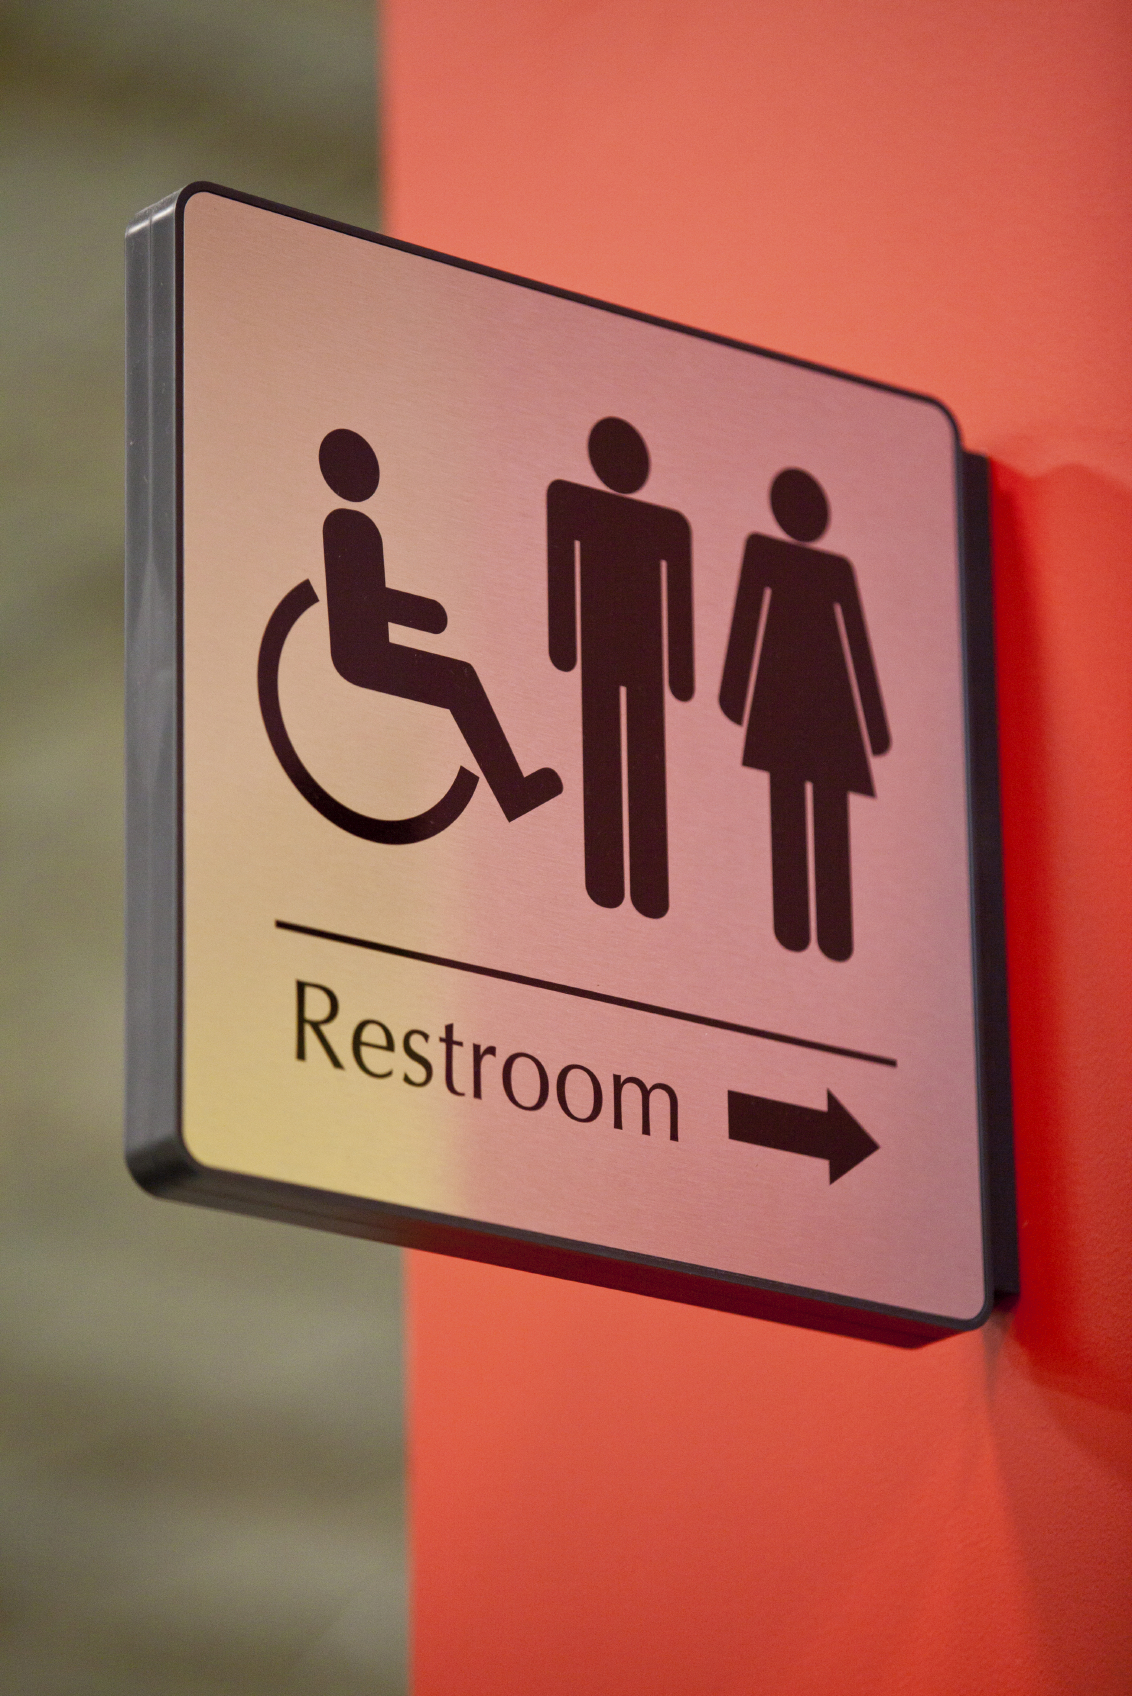 How risky is using a public bathroom during the pandemic? – Harvard Health Blog